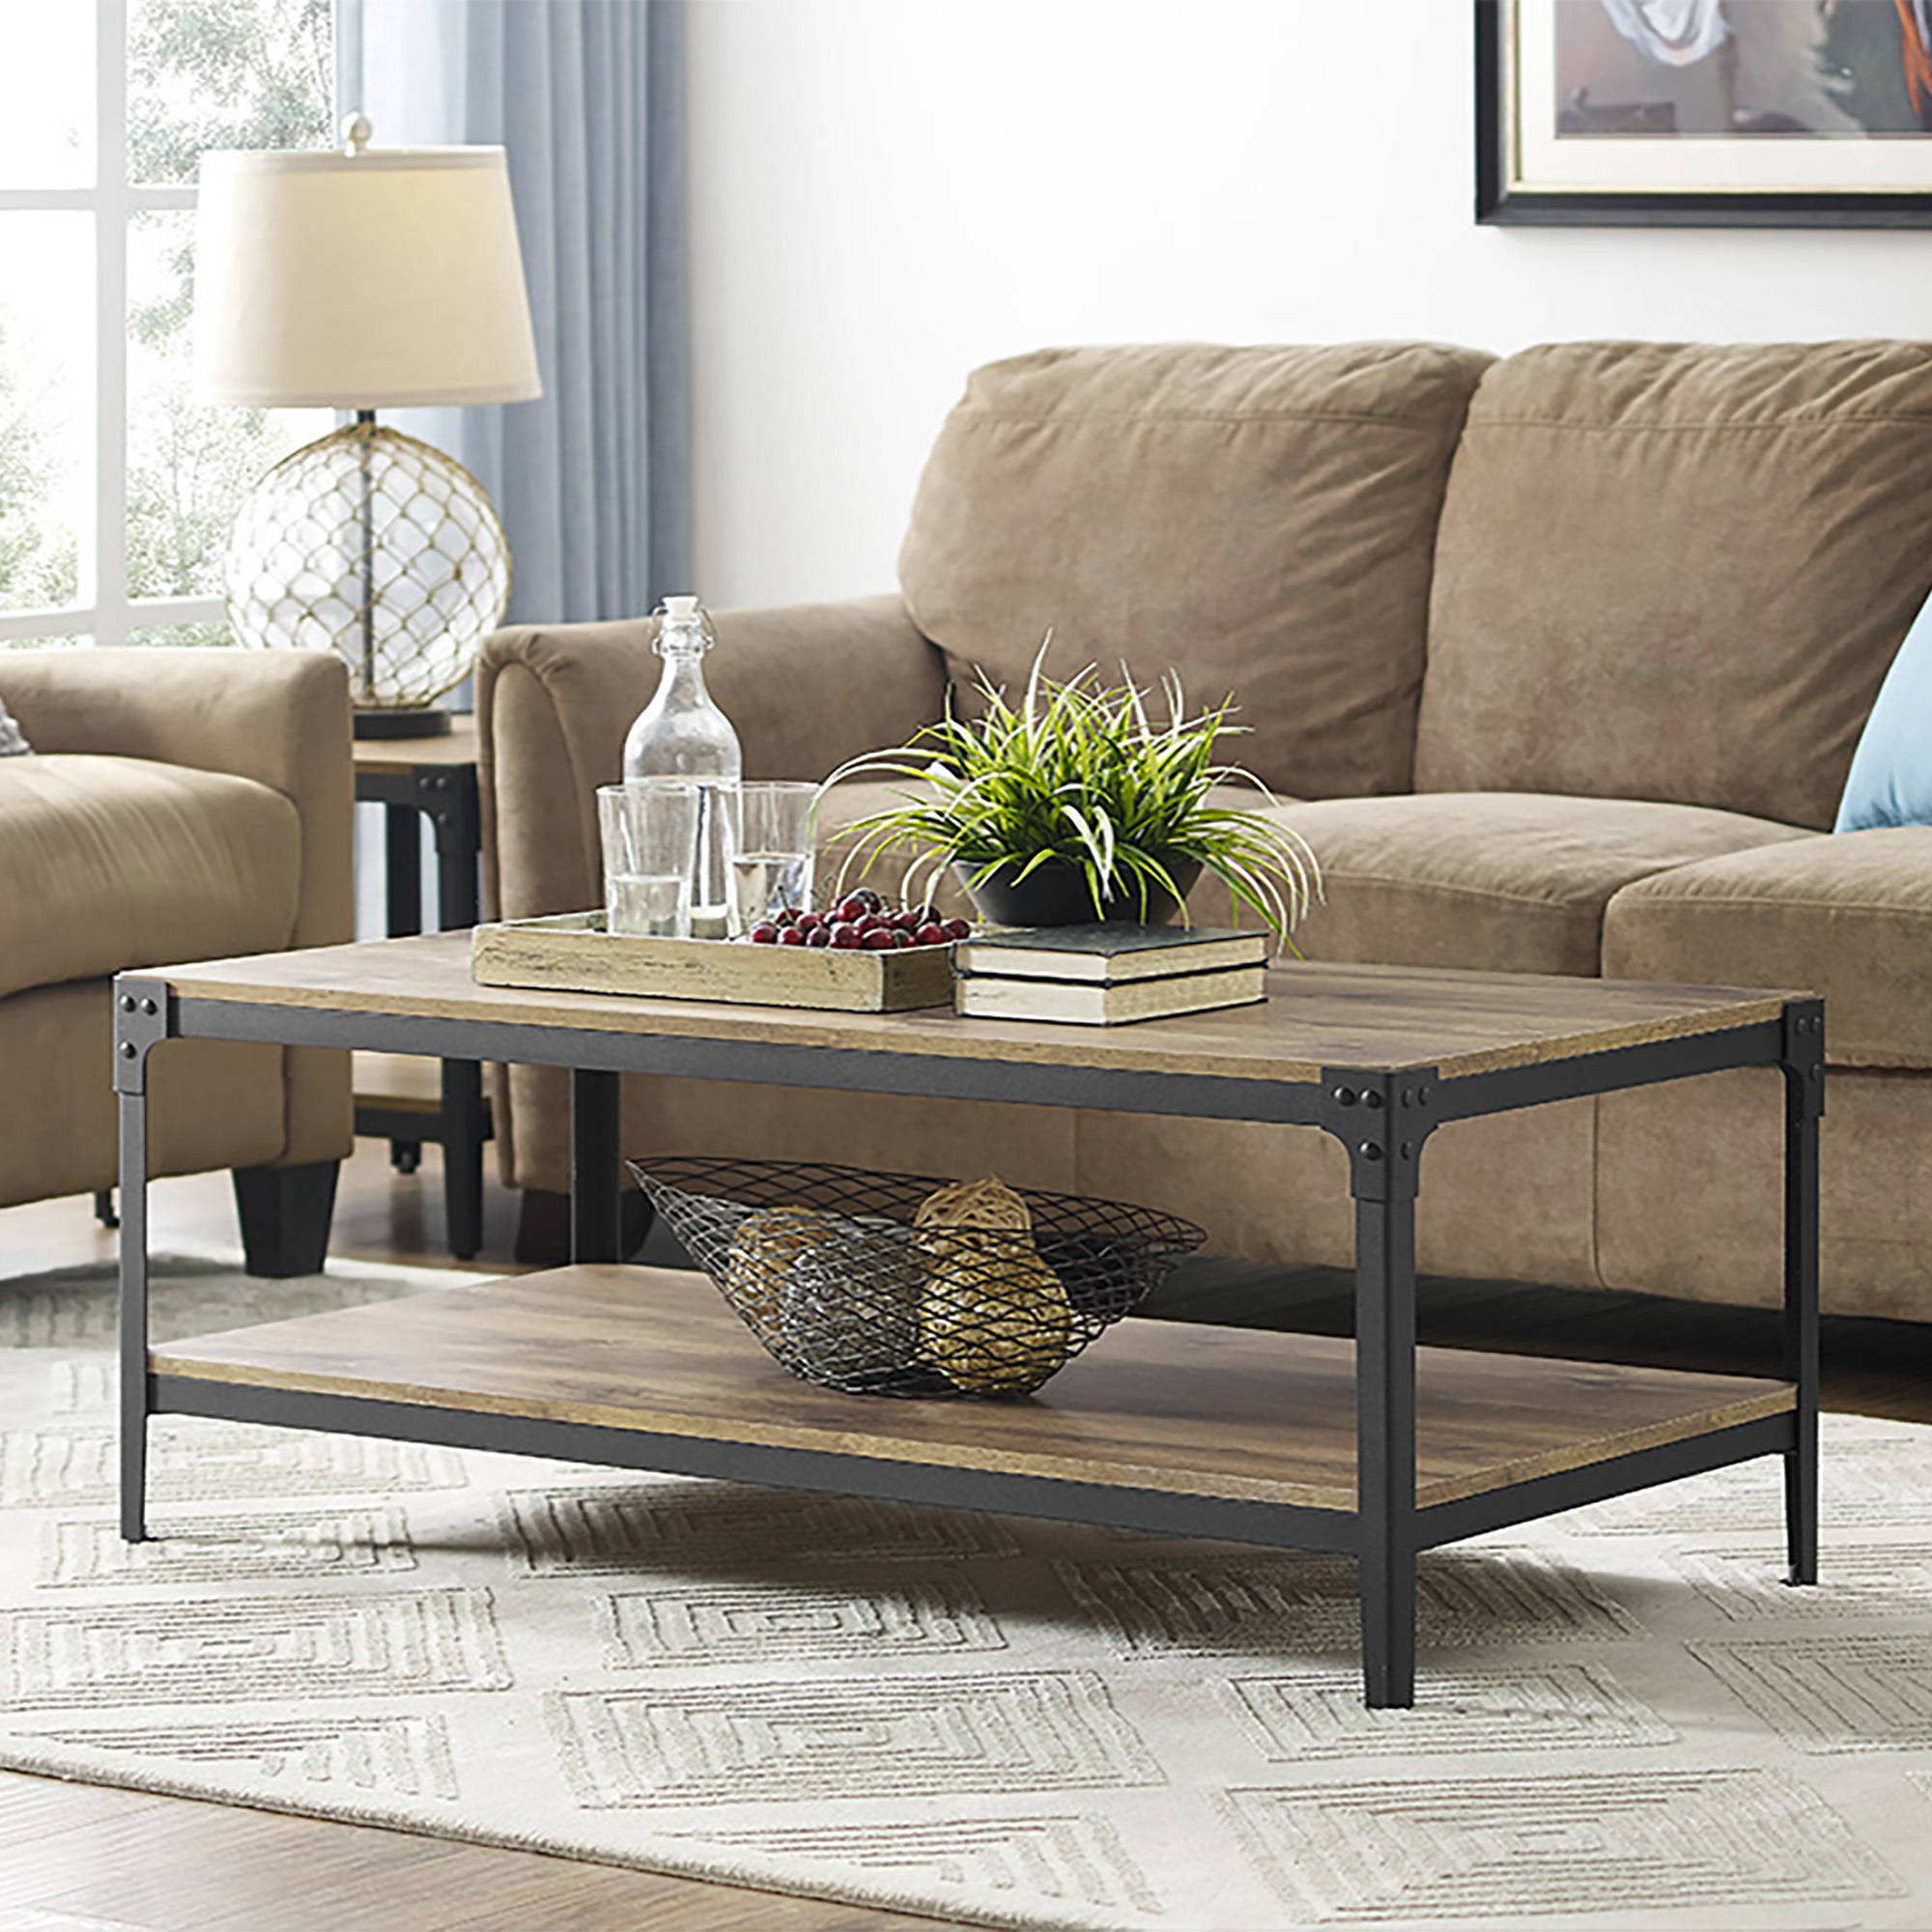 Angle Iron Rustic Wood Coffee Table - Barnwood